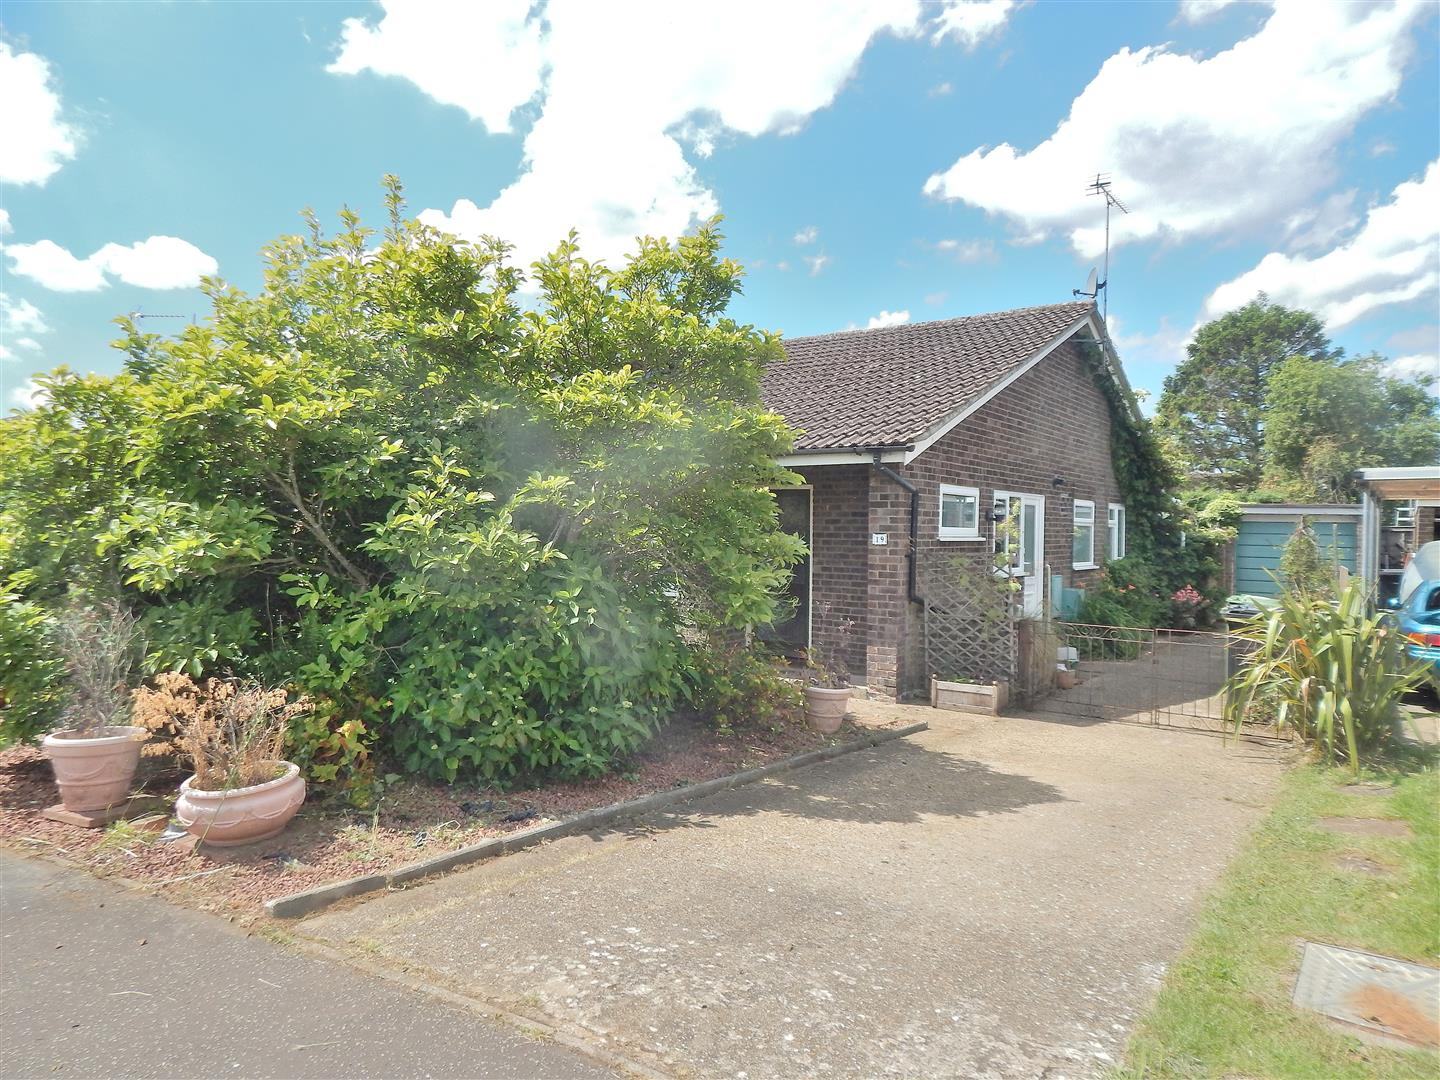 2 bed semi-detached bungalow for sale in Grovelands, King's Lynn  - Property Image 1